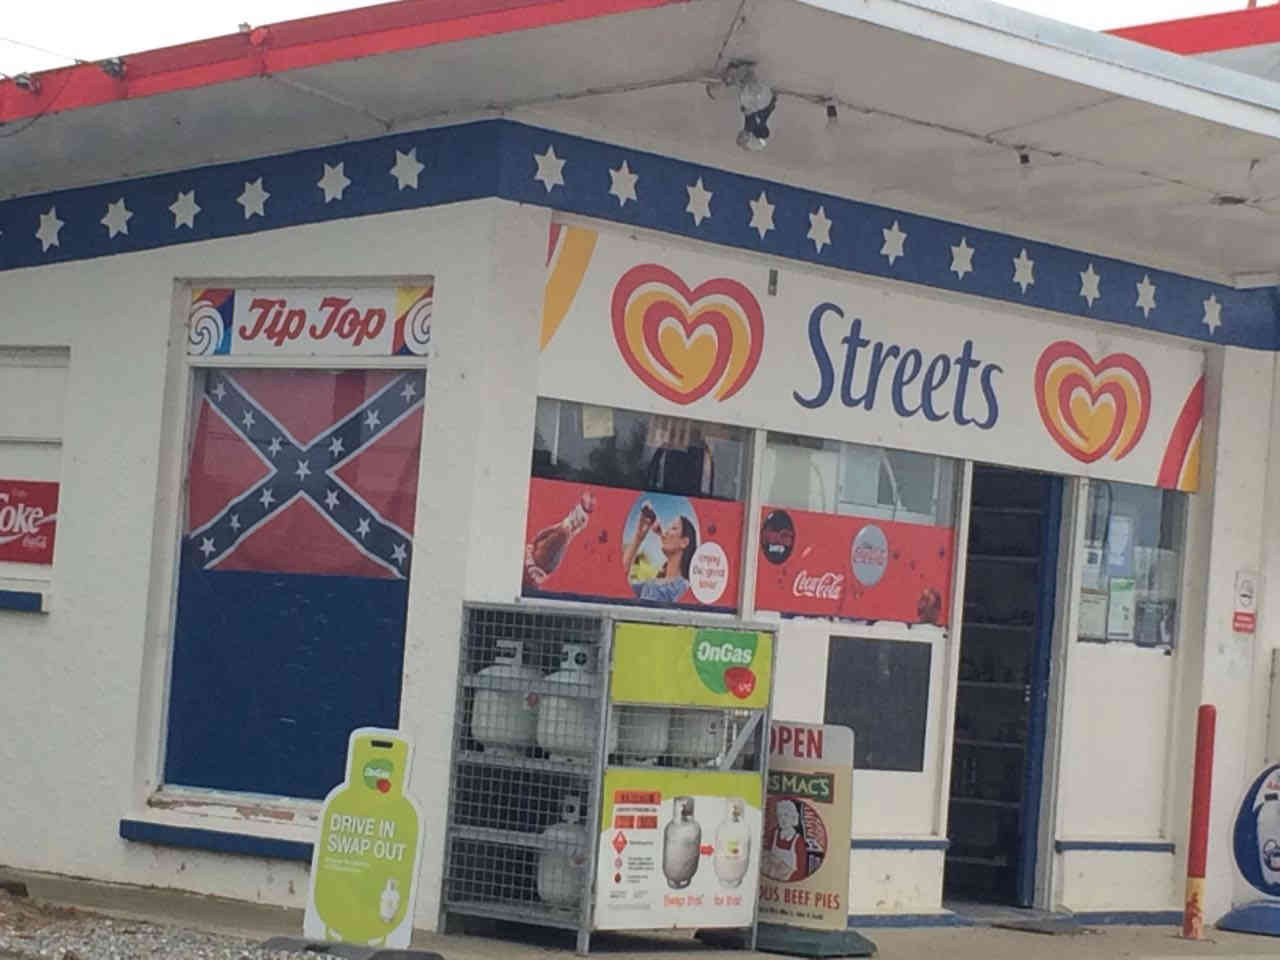 """But before we move further, a place of interest is Maheno Service Centre, just few kilometres from the Clarks Mill. The display of the Confederate flag, which in modern times has come to be associated with """"white supremacy"""", is noticeable."""